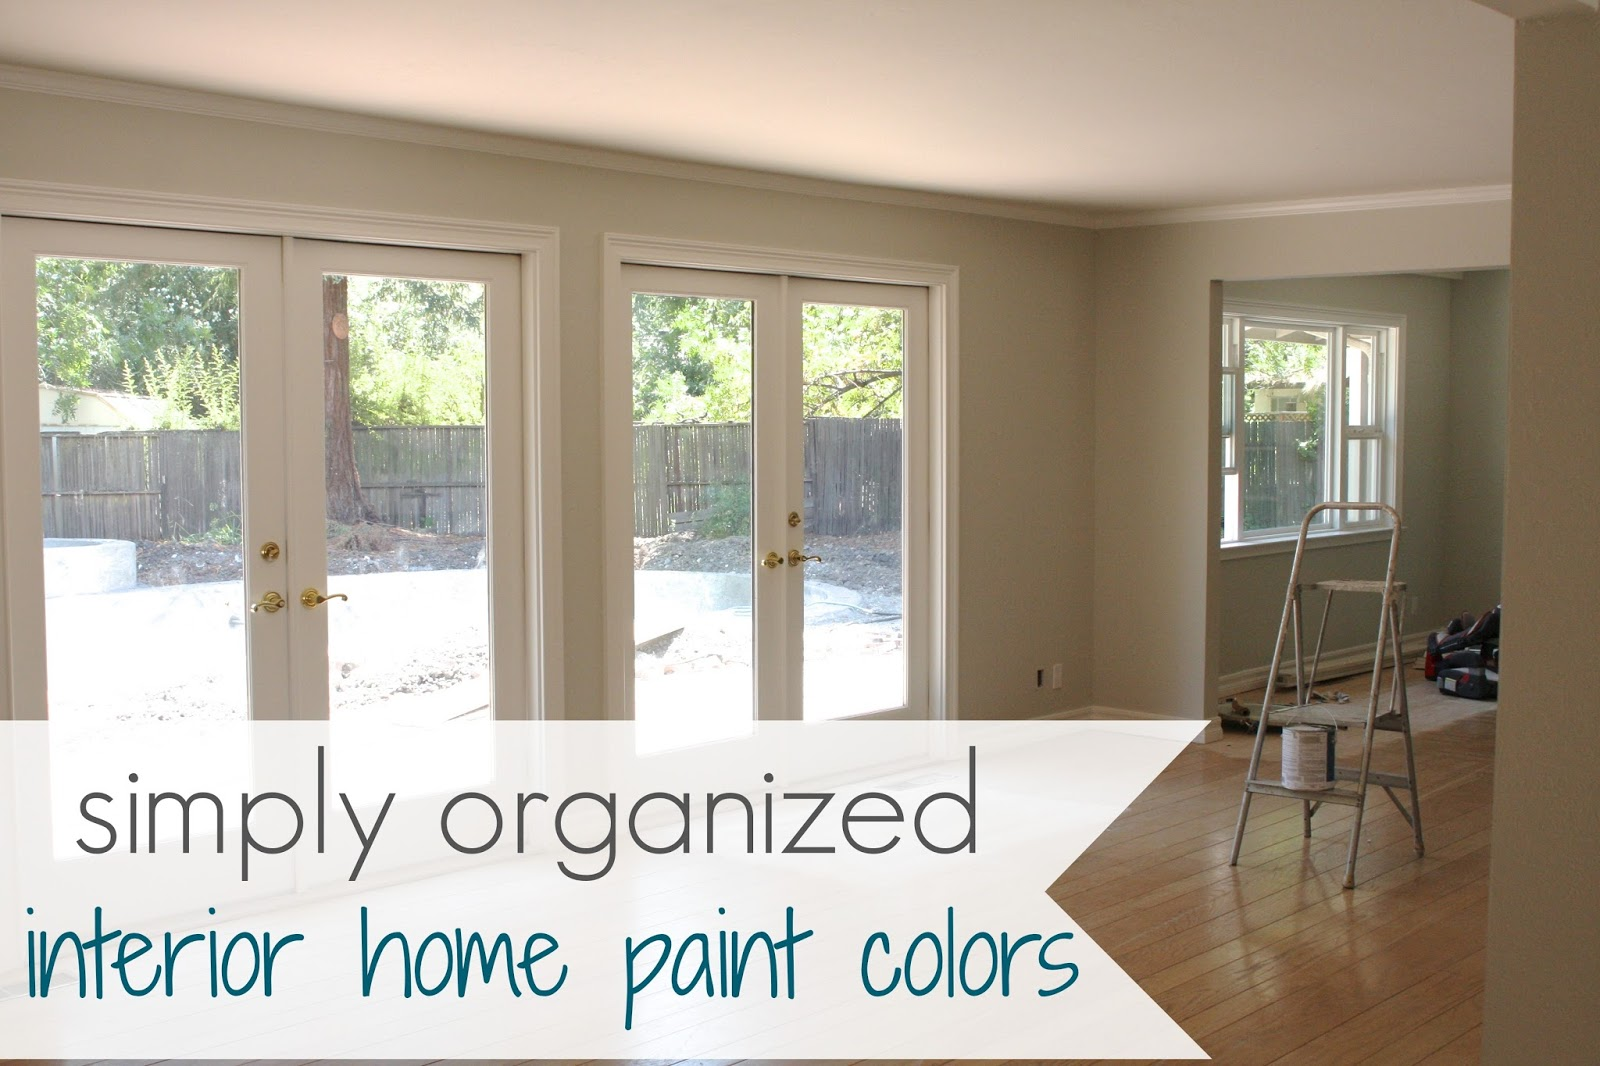 My home interior paint color palate simply organized for House paint design interior